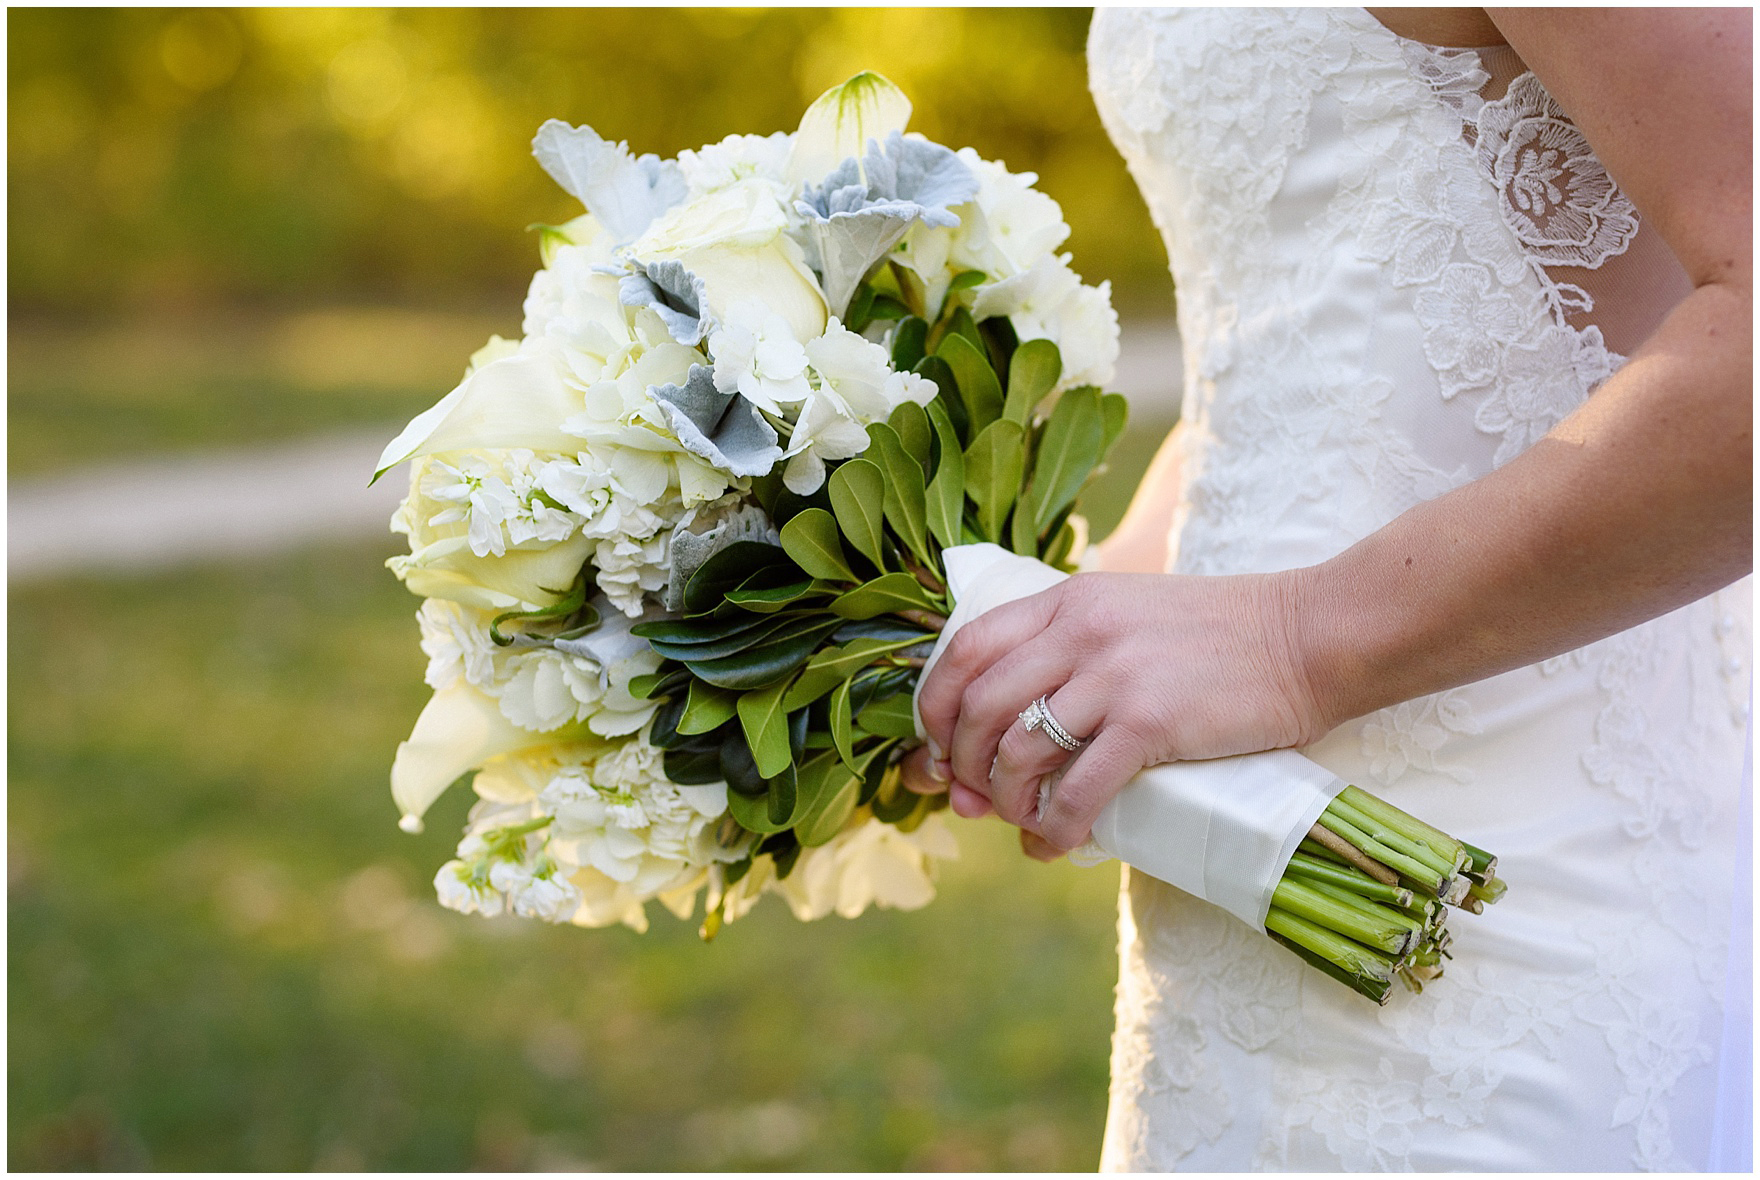 Detail of the bride's bouquet during a Glen Club Glenview Illinois wedding.